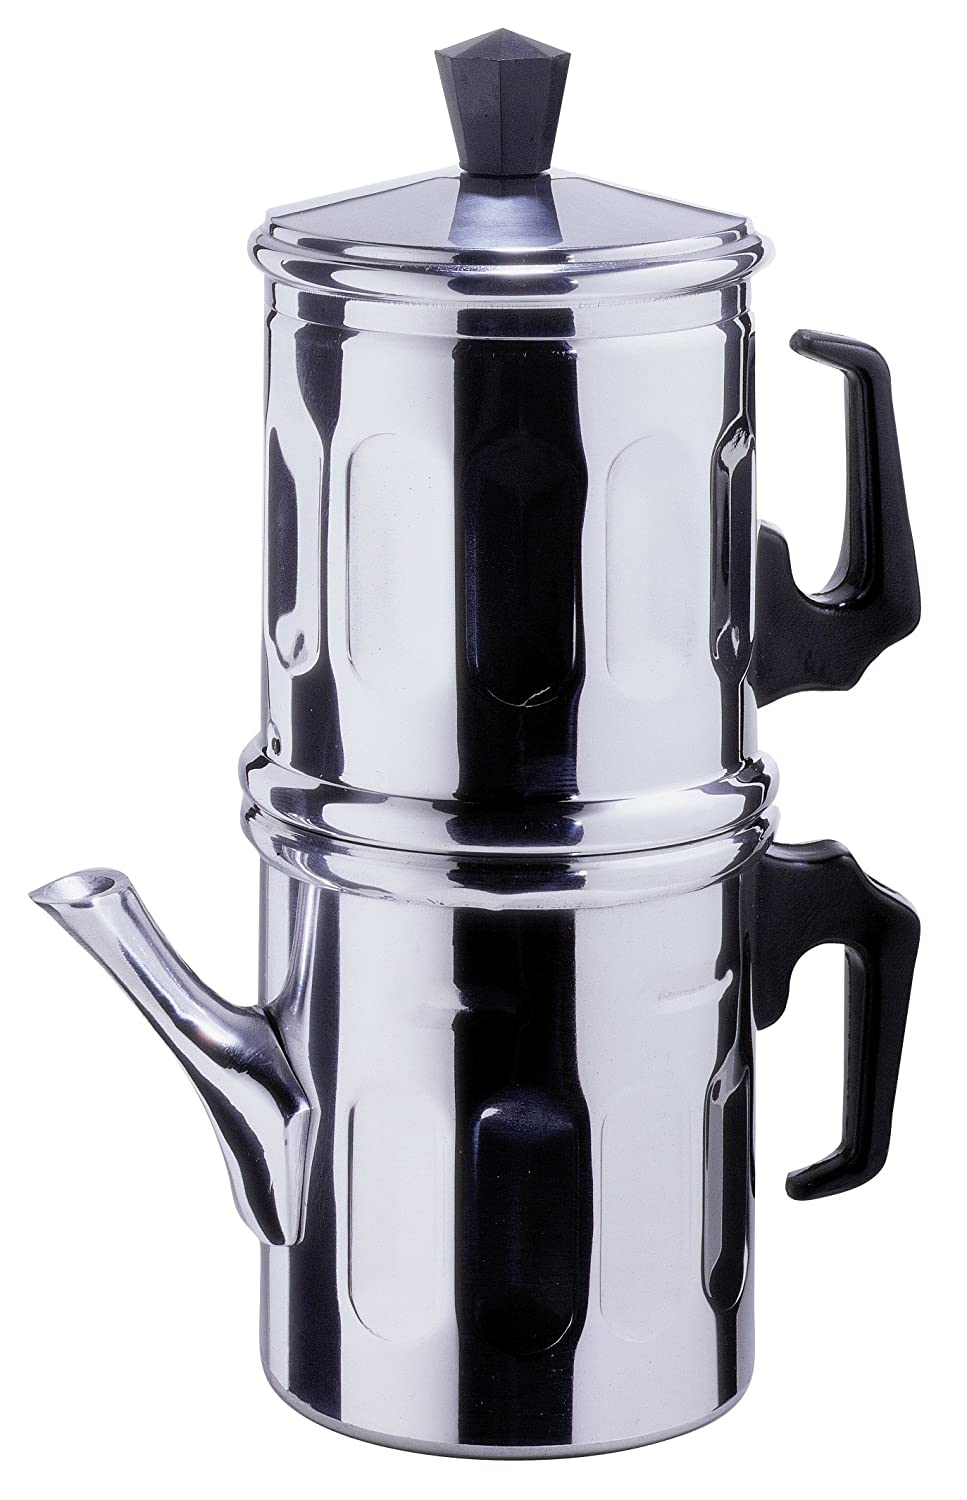 ILSA Neapolitan Coffee Maker 3-4 Cup Size - Aluminium made[ Italian Import ] Art. 4